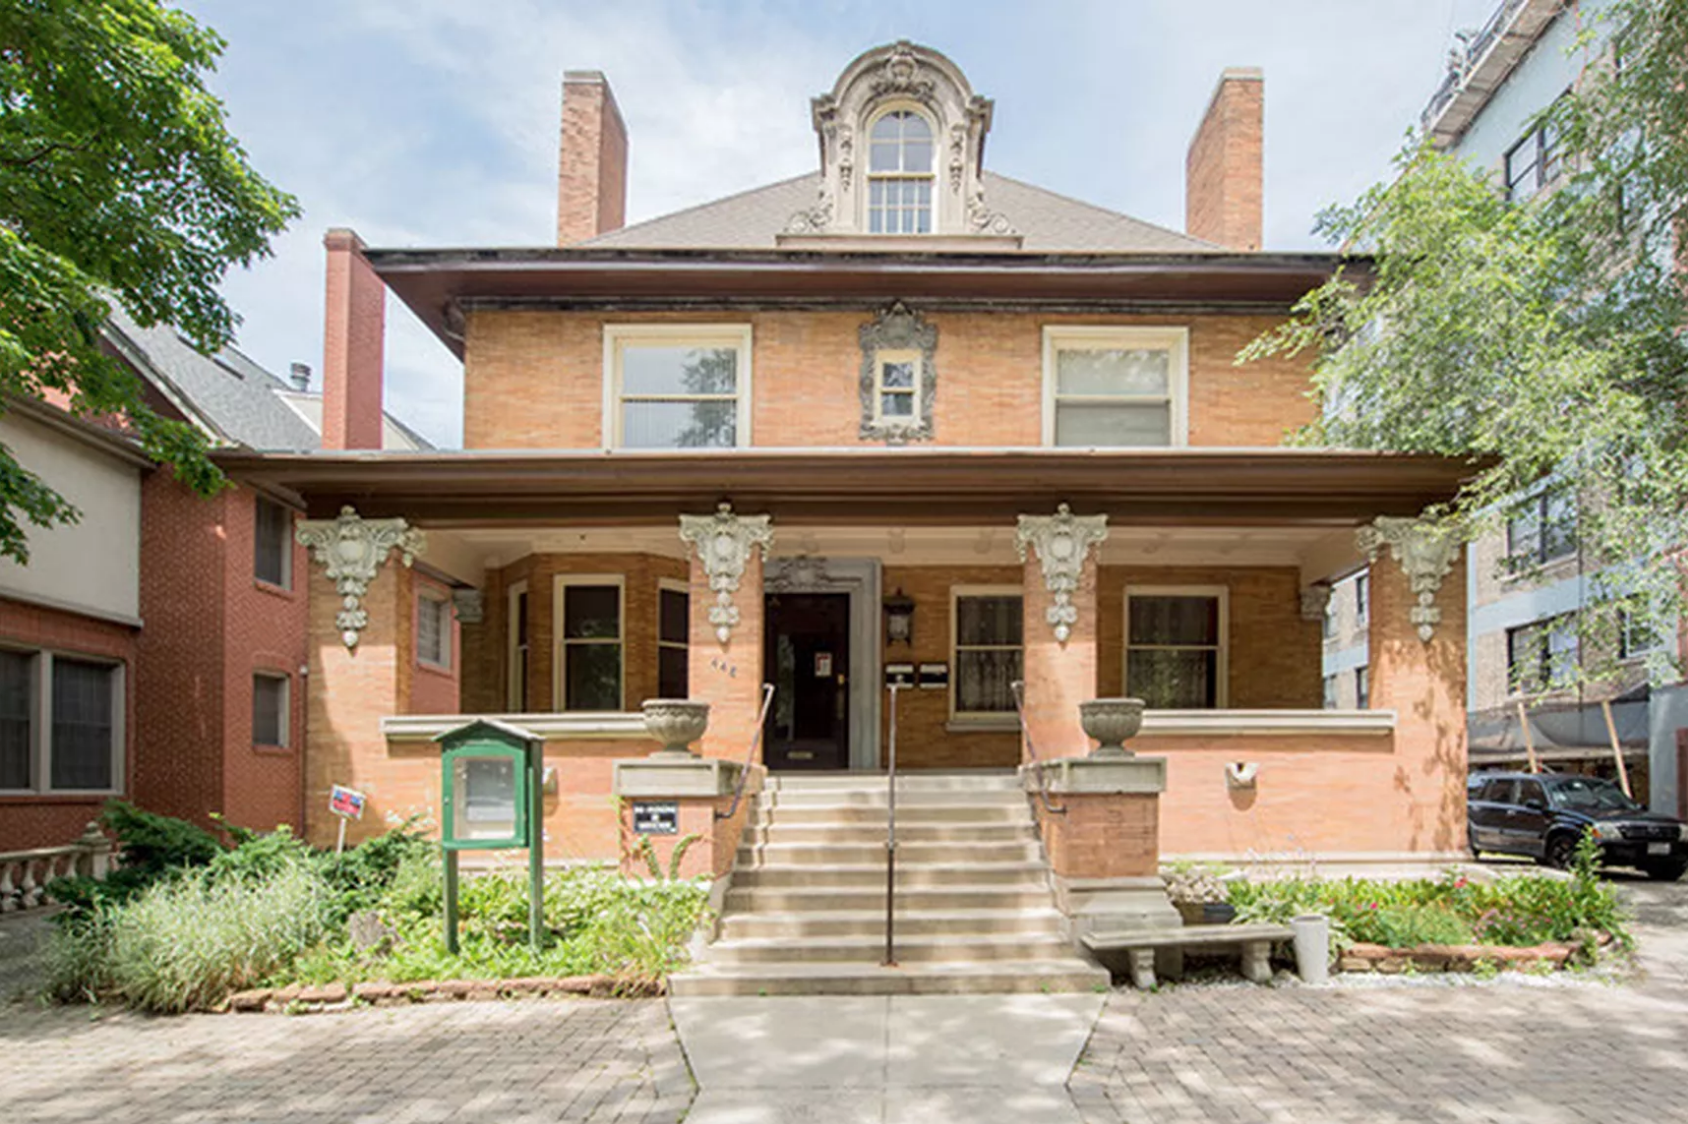 Demolition watch curbed chicago for Chicago mansion for sale